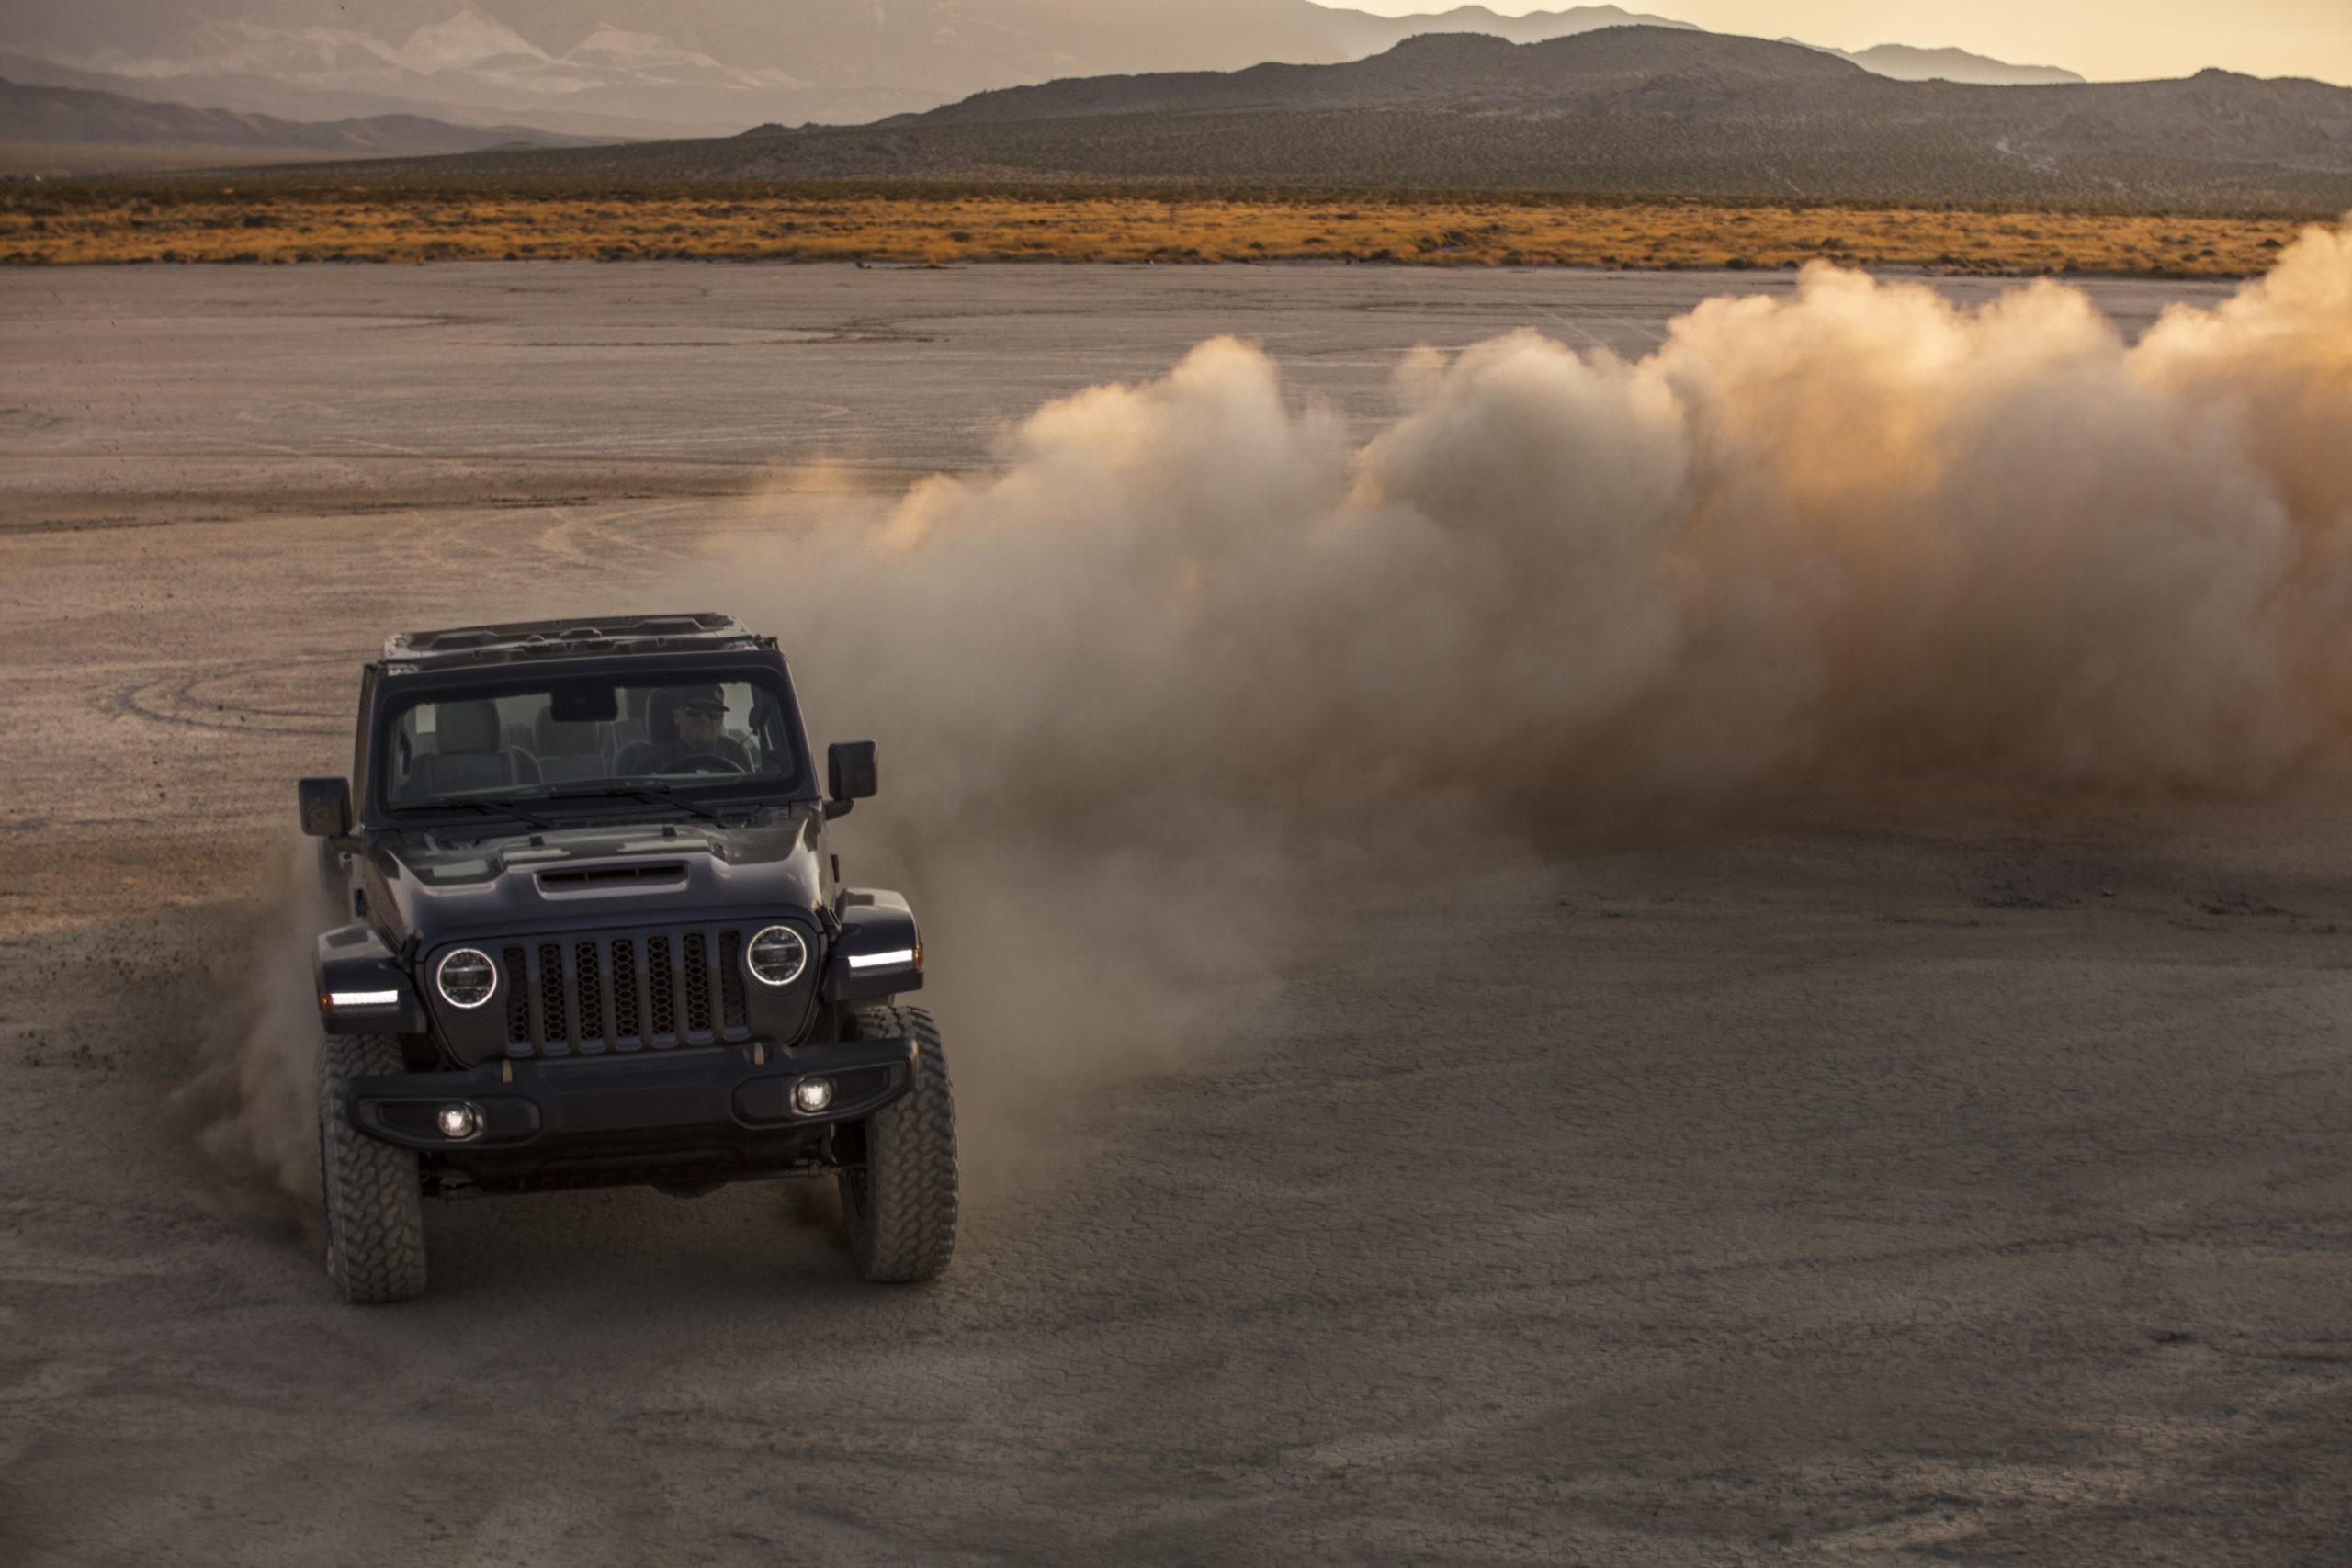 2021 Jeep Wrangler Rubicon 392 gray making dust clouds